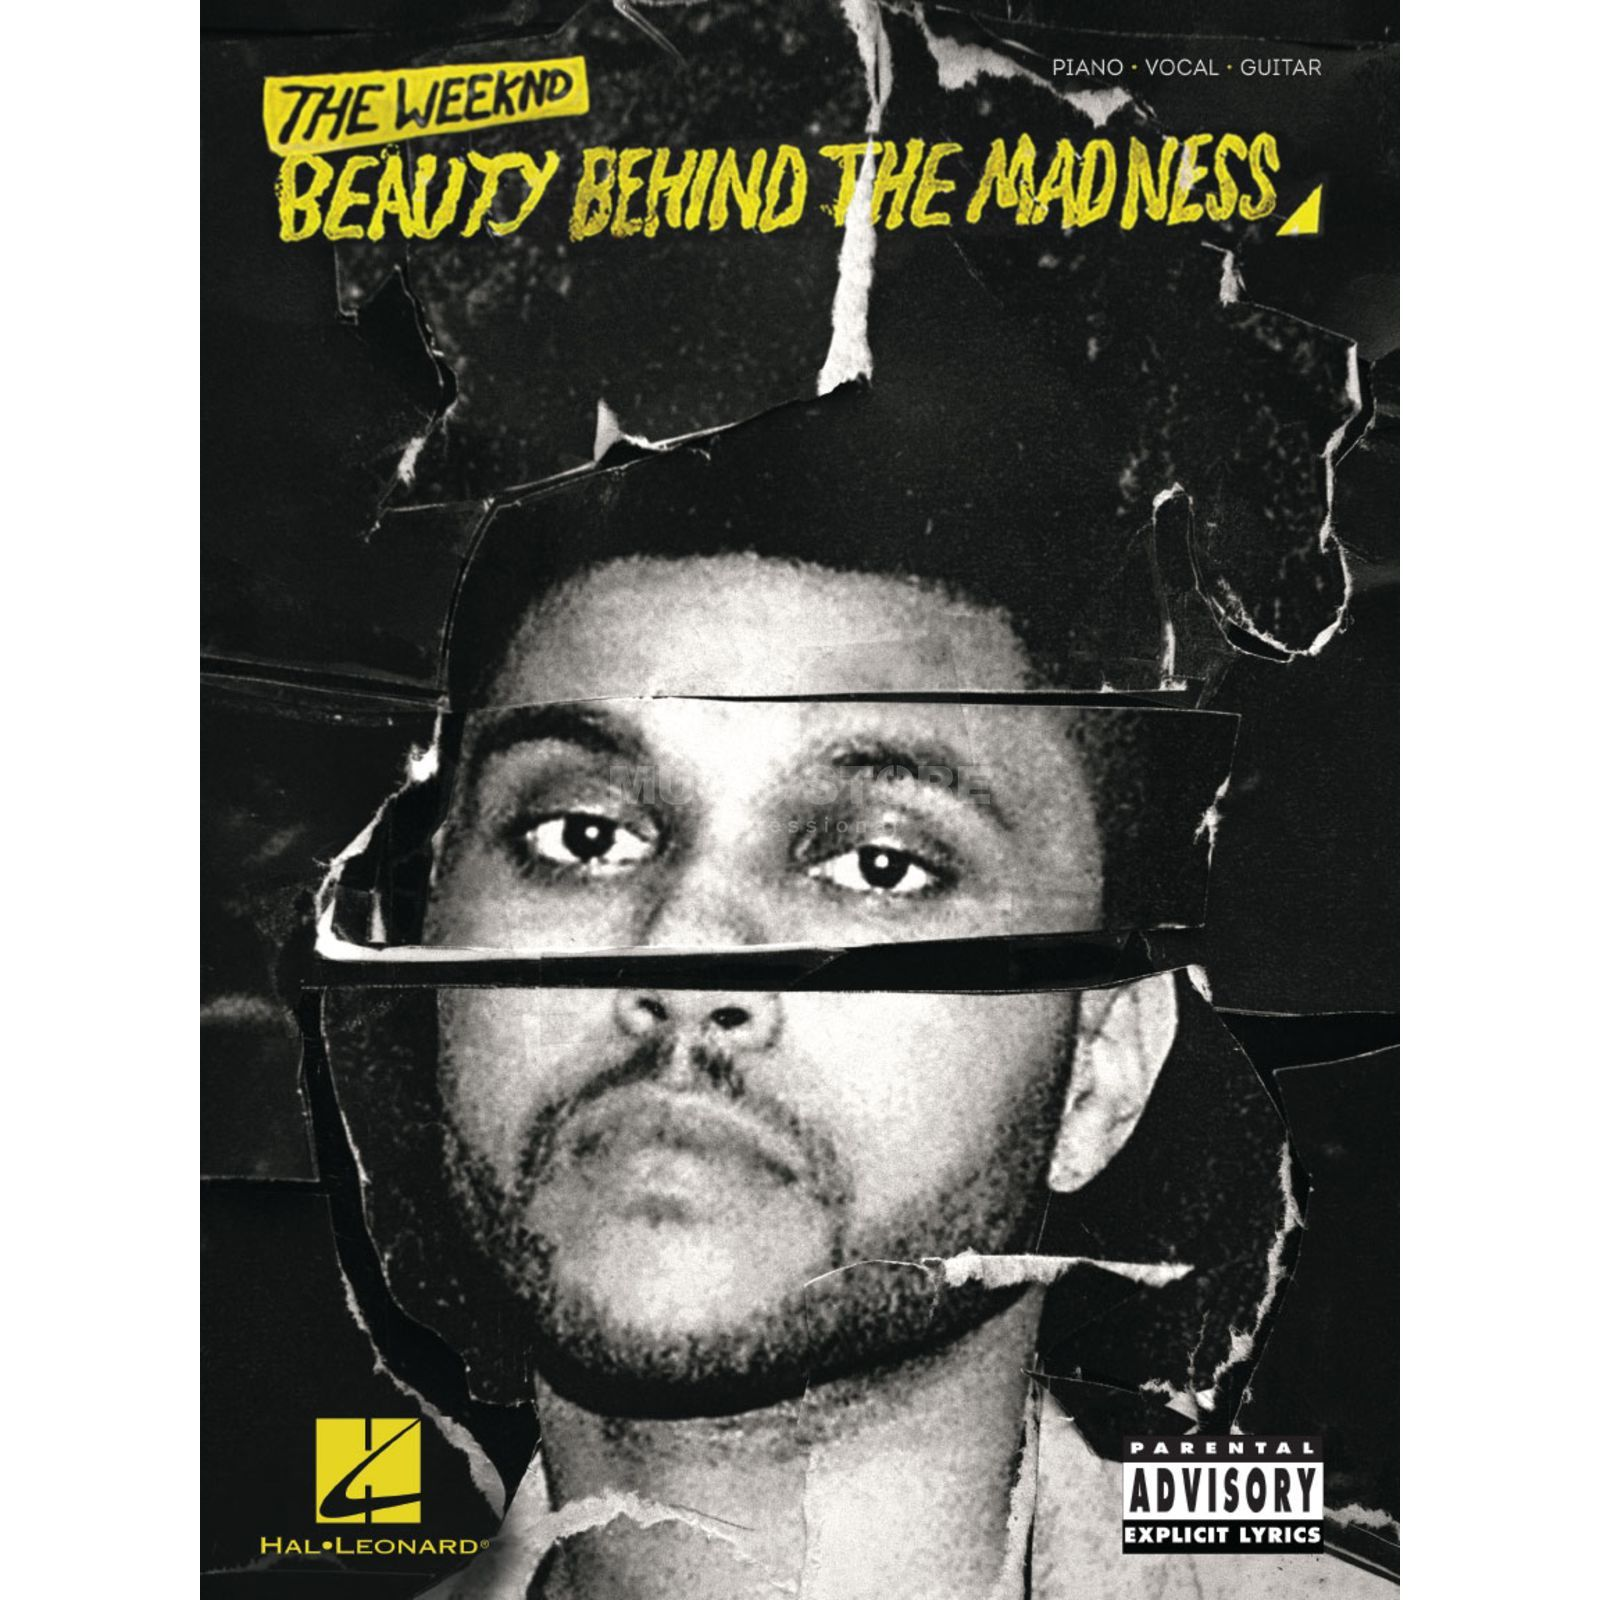 Hal Leonard The Weeknd: Beauty Behind The Madness PVG Produktbild